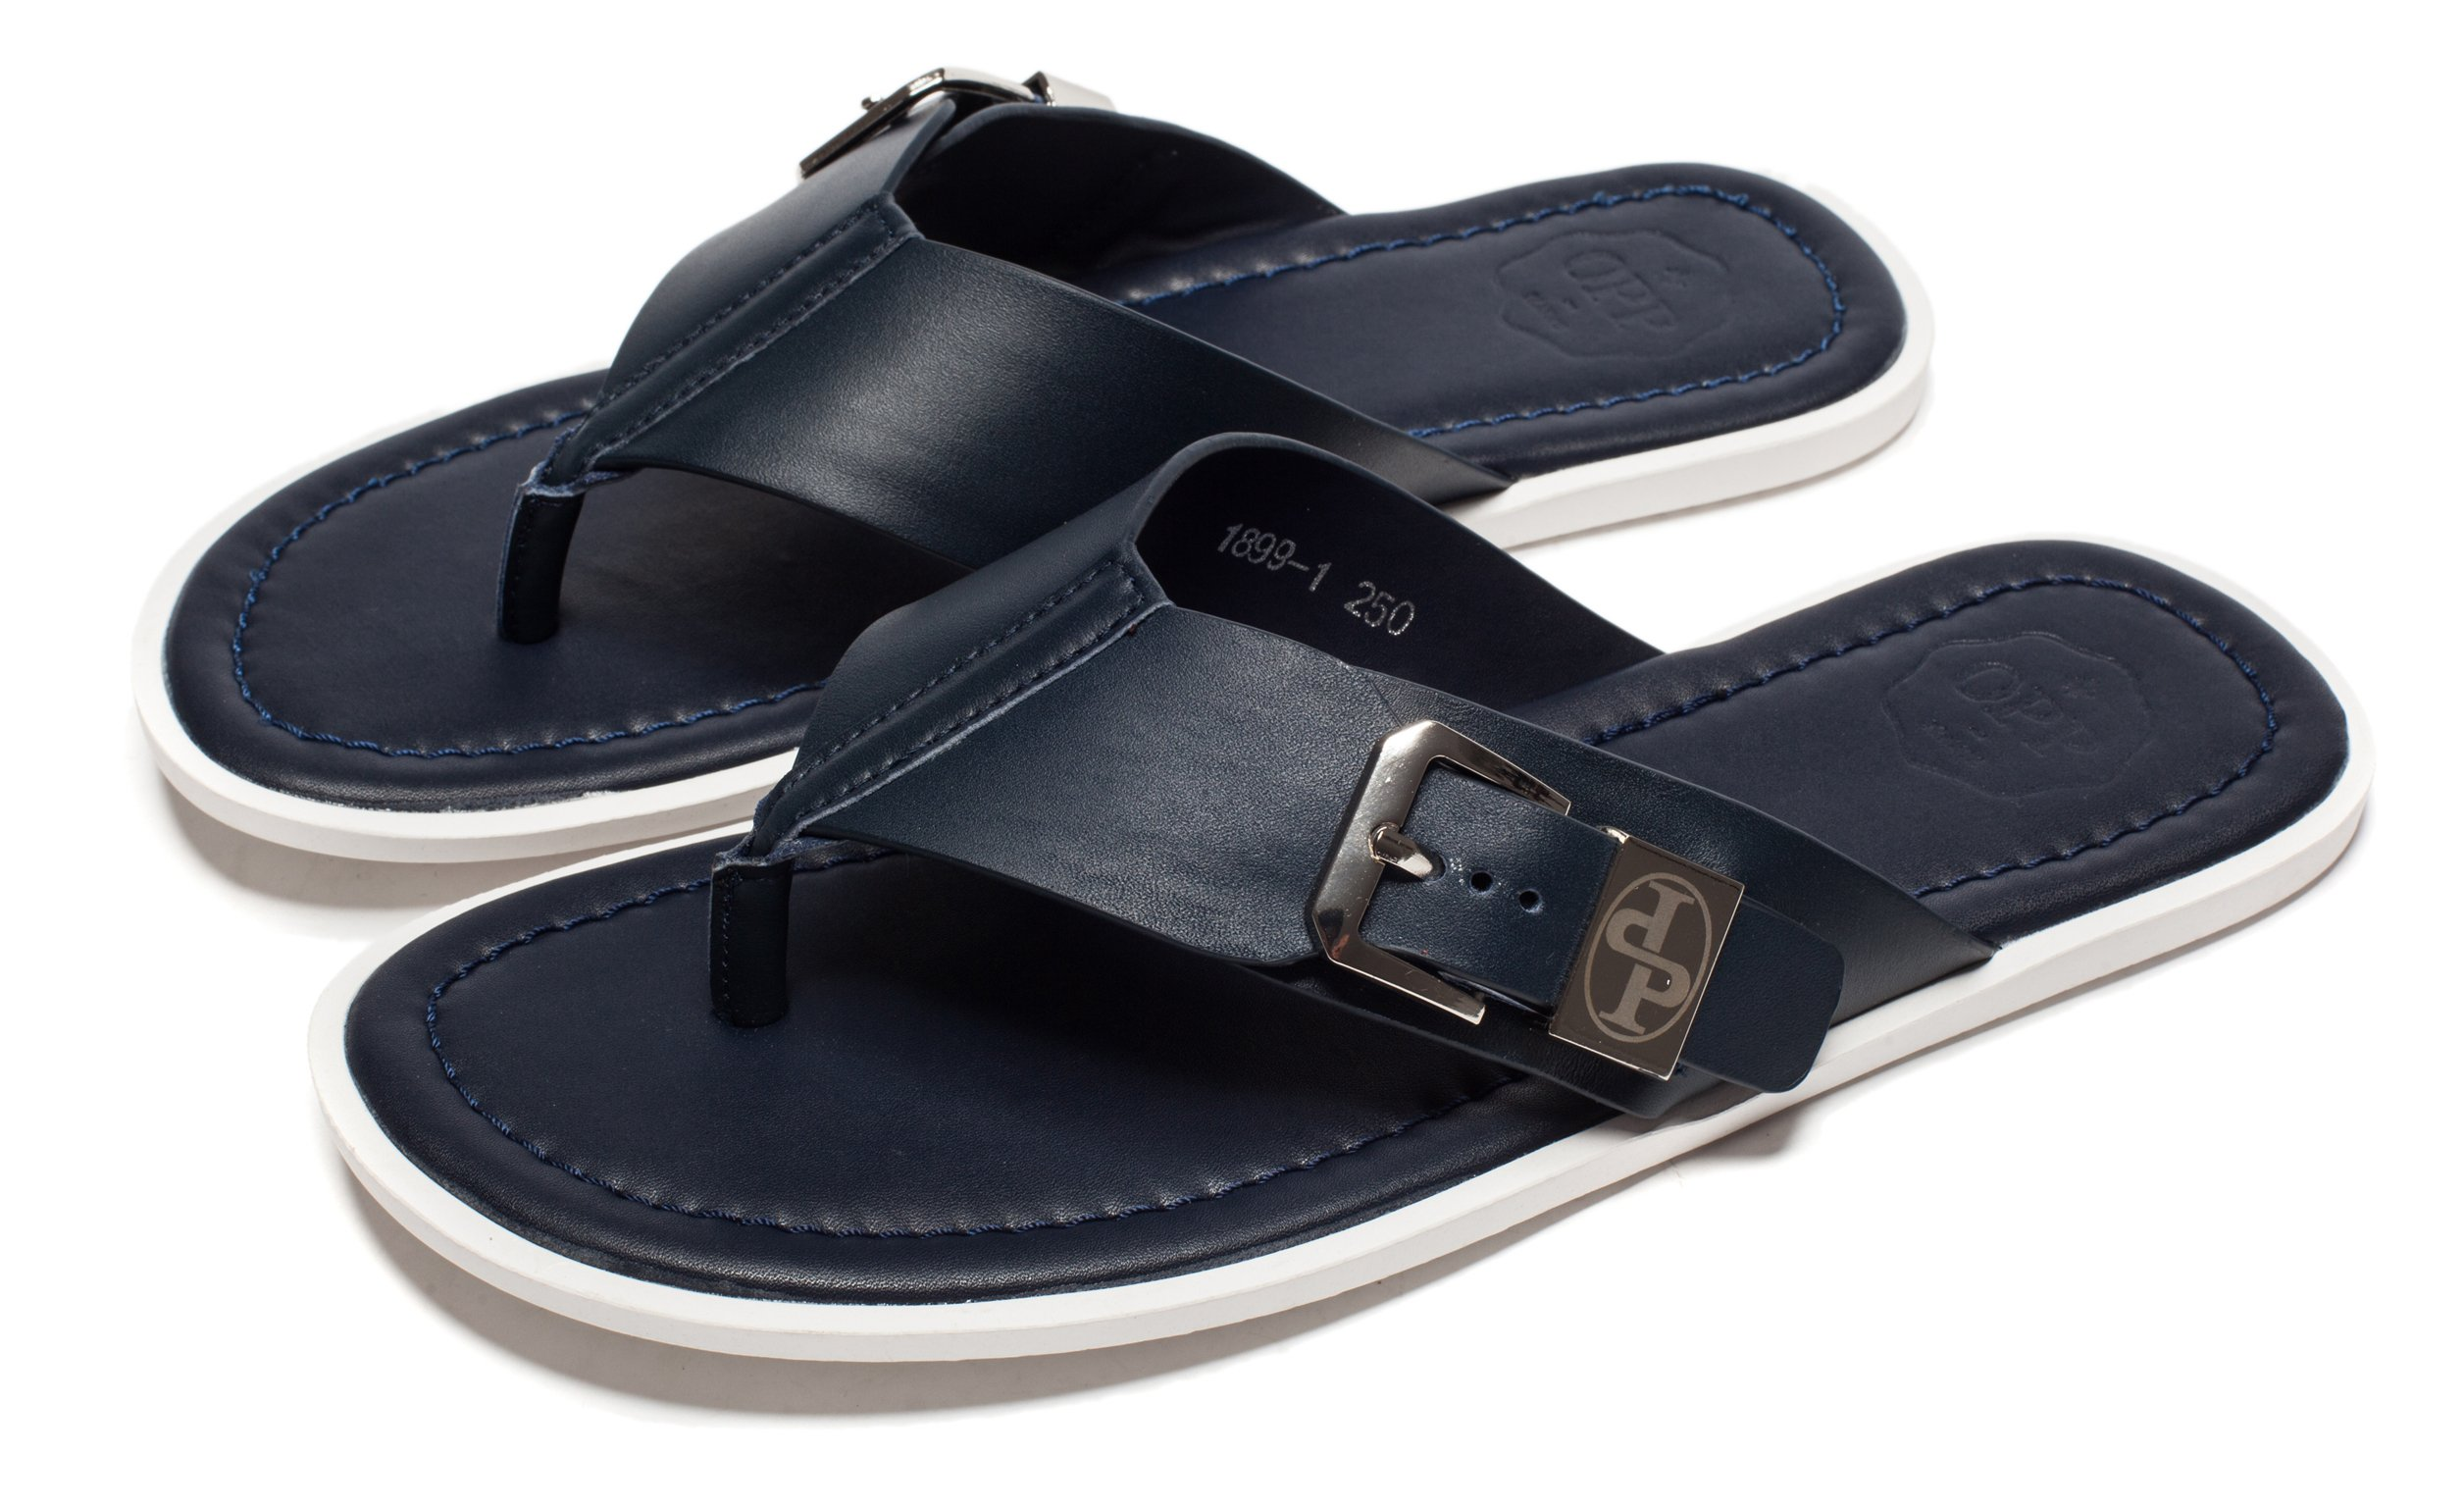 OPP Men's Classic Fashion Casual Anti-skidding Flip-Flops Slippers in Genuine Leather Summer 2016 Collection, Blue,10 D(M) US